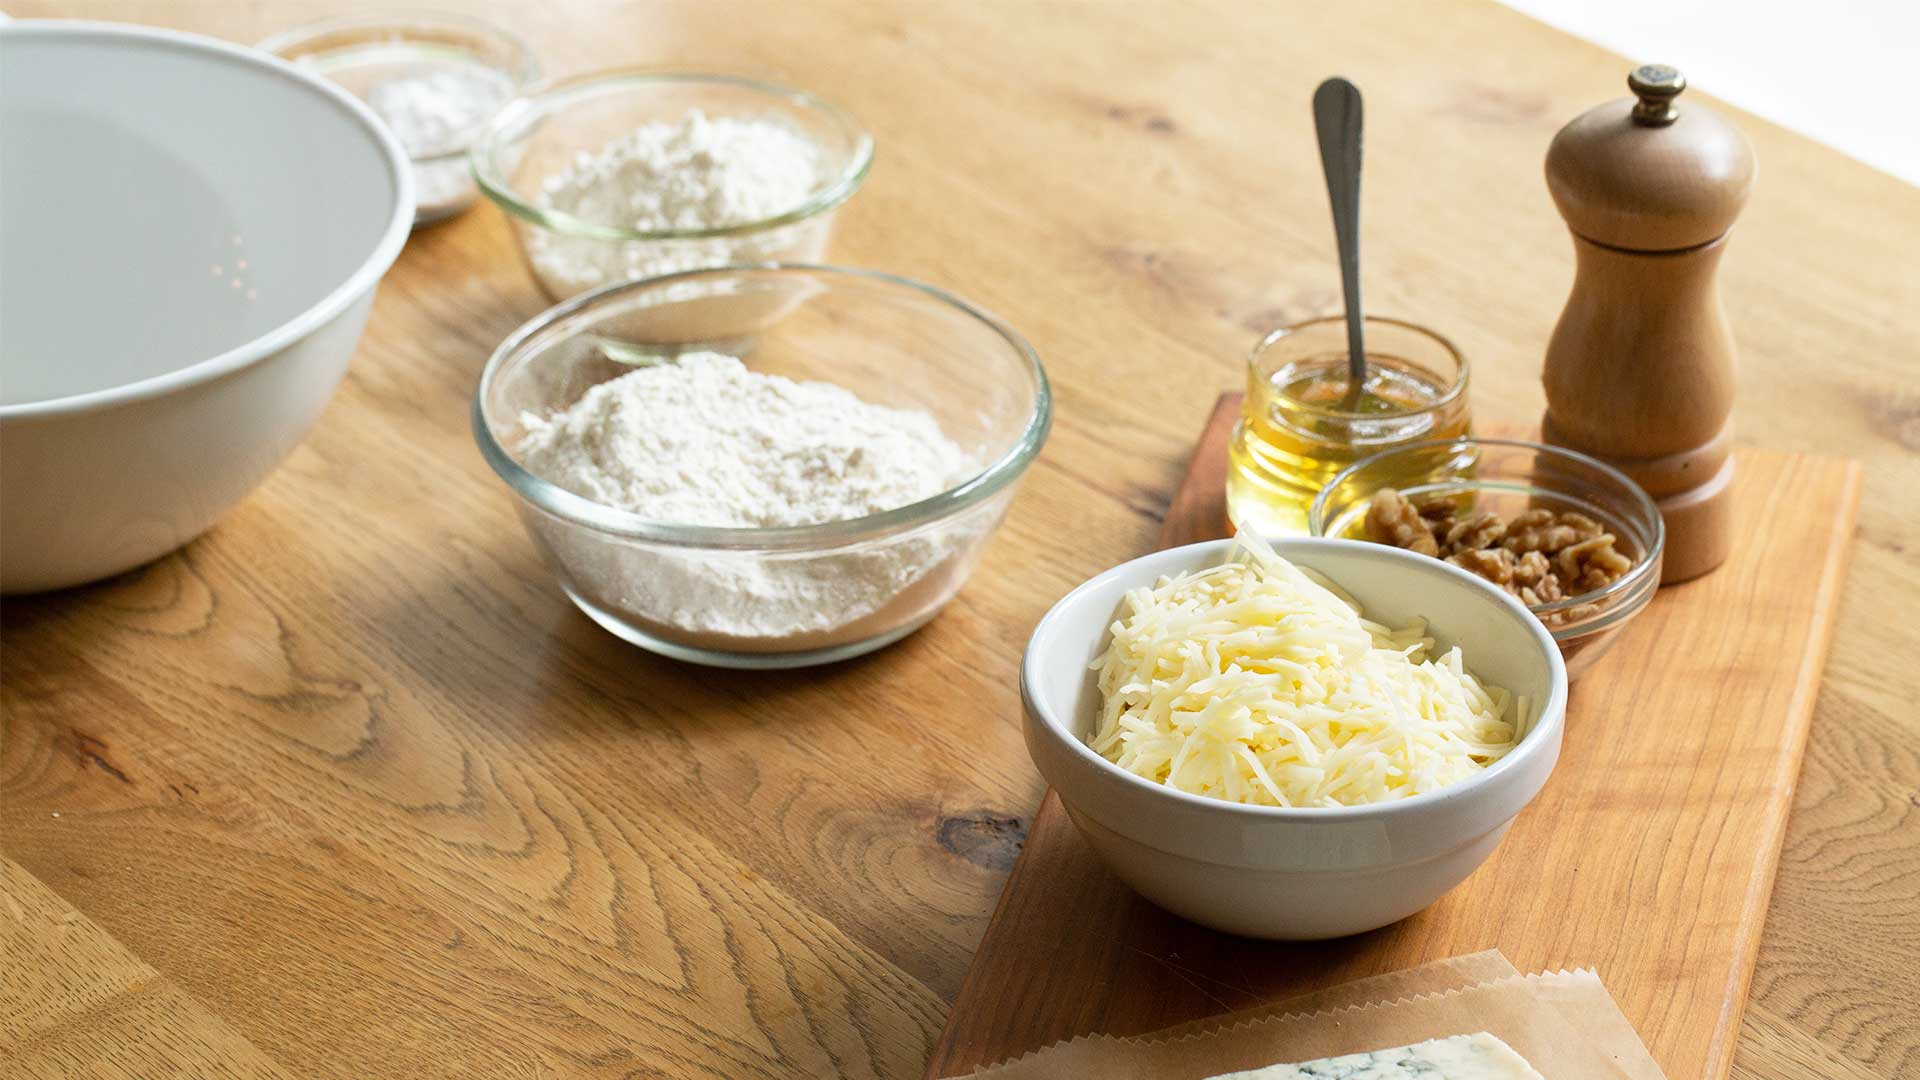 ingredients for gorgonzola pizza